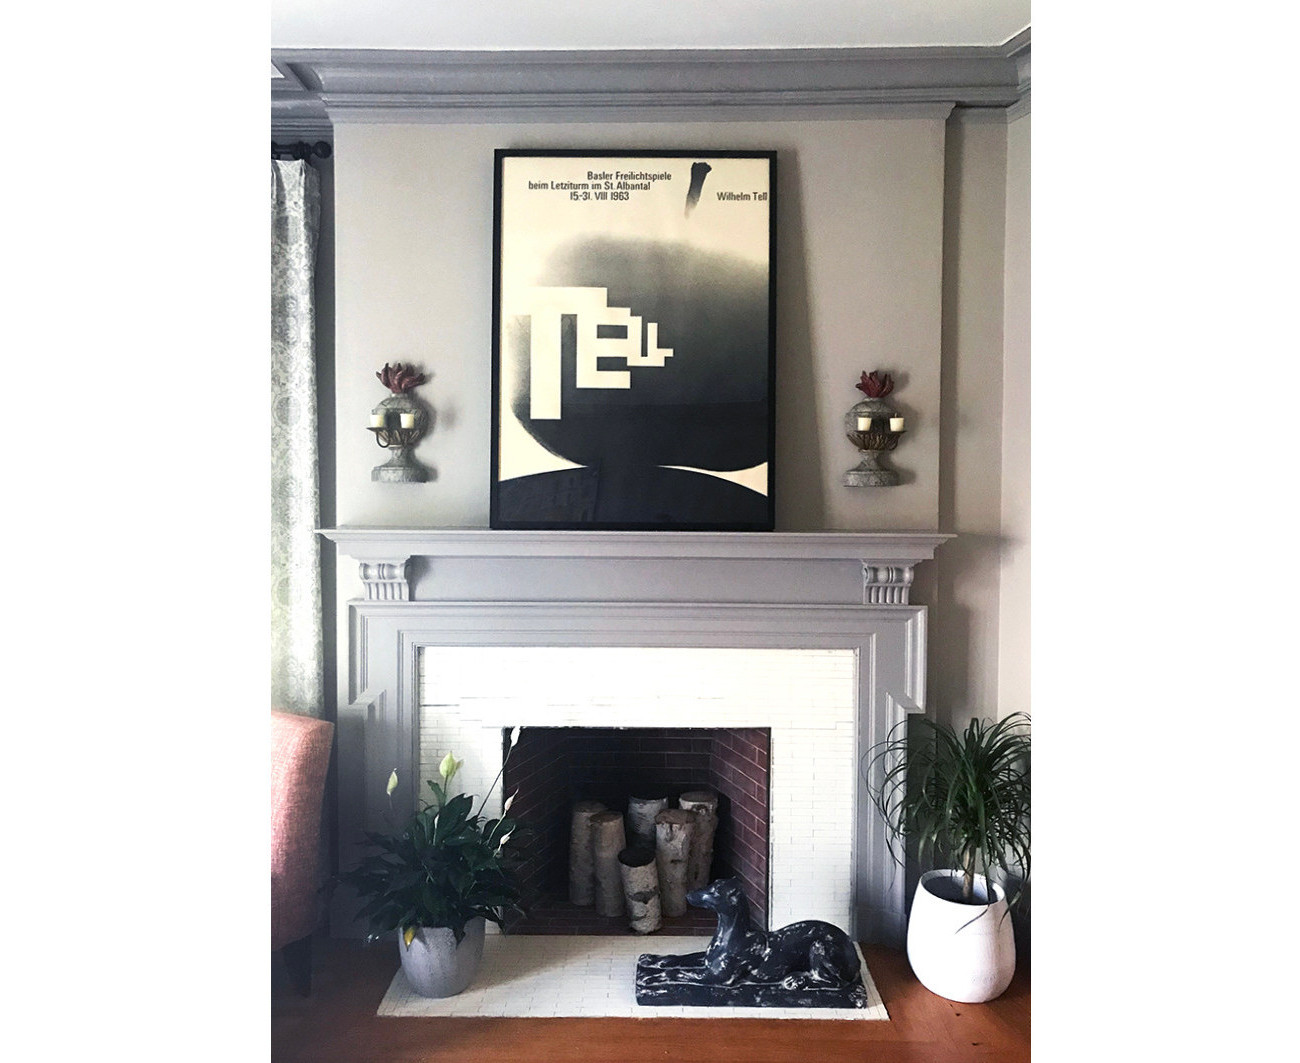 modern home fireplace with typographic poster above; black, white, gray